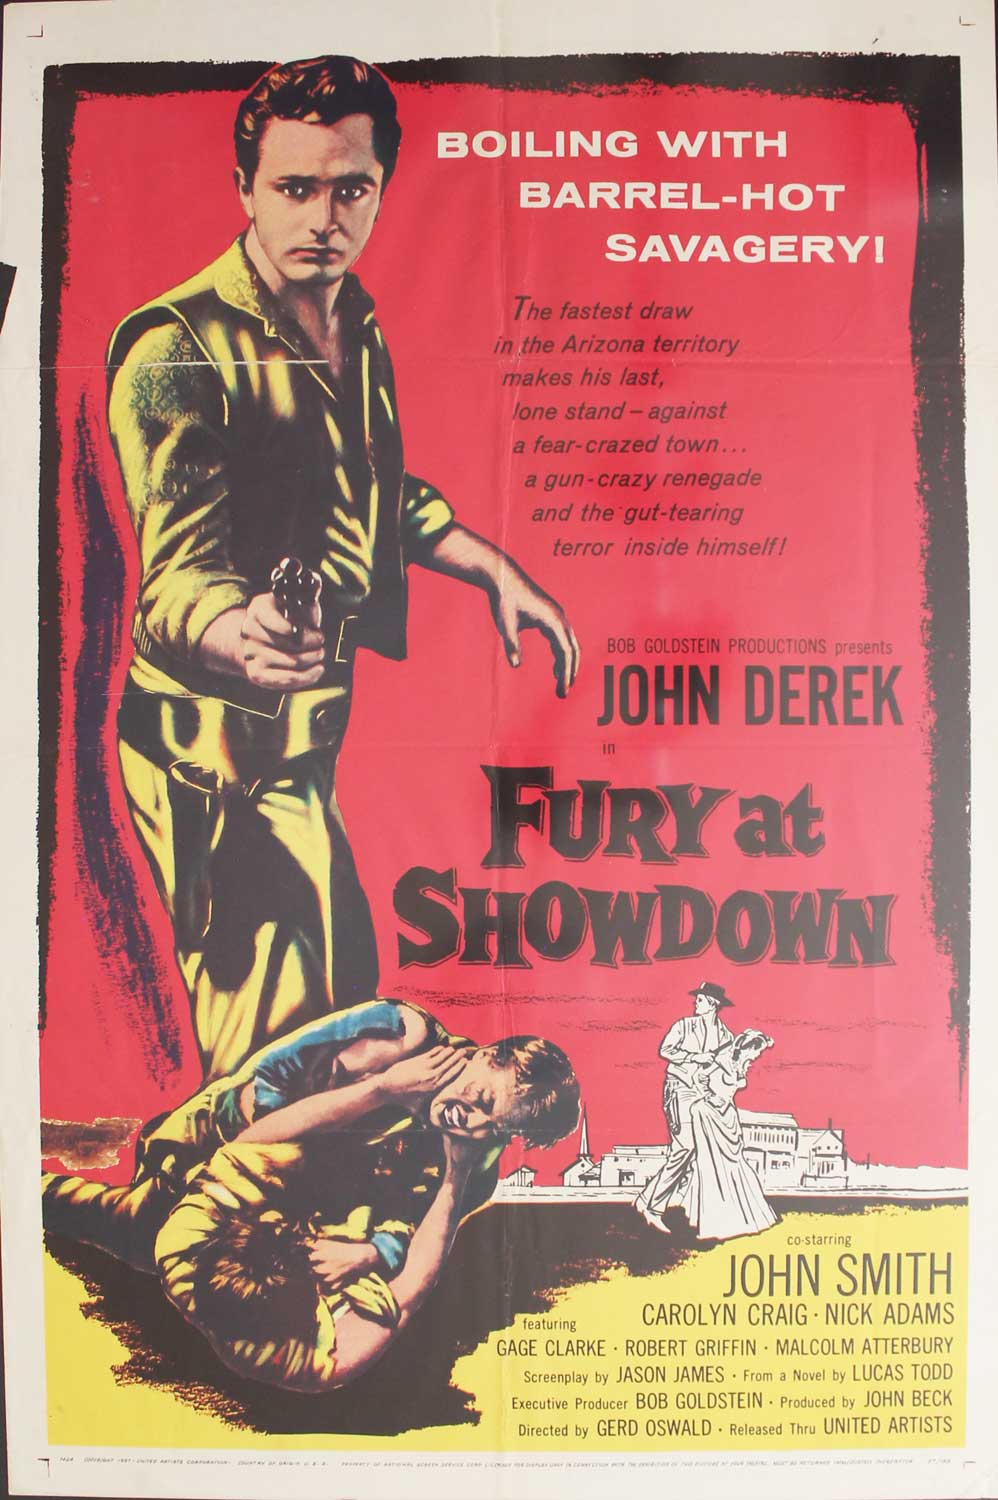 Fury at Showdown, 1957, John Derek, Original 1 Sheet (27x41)